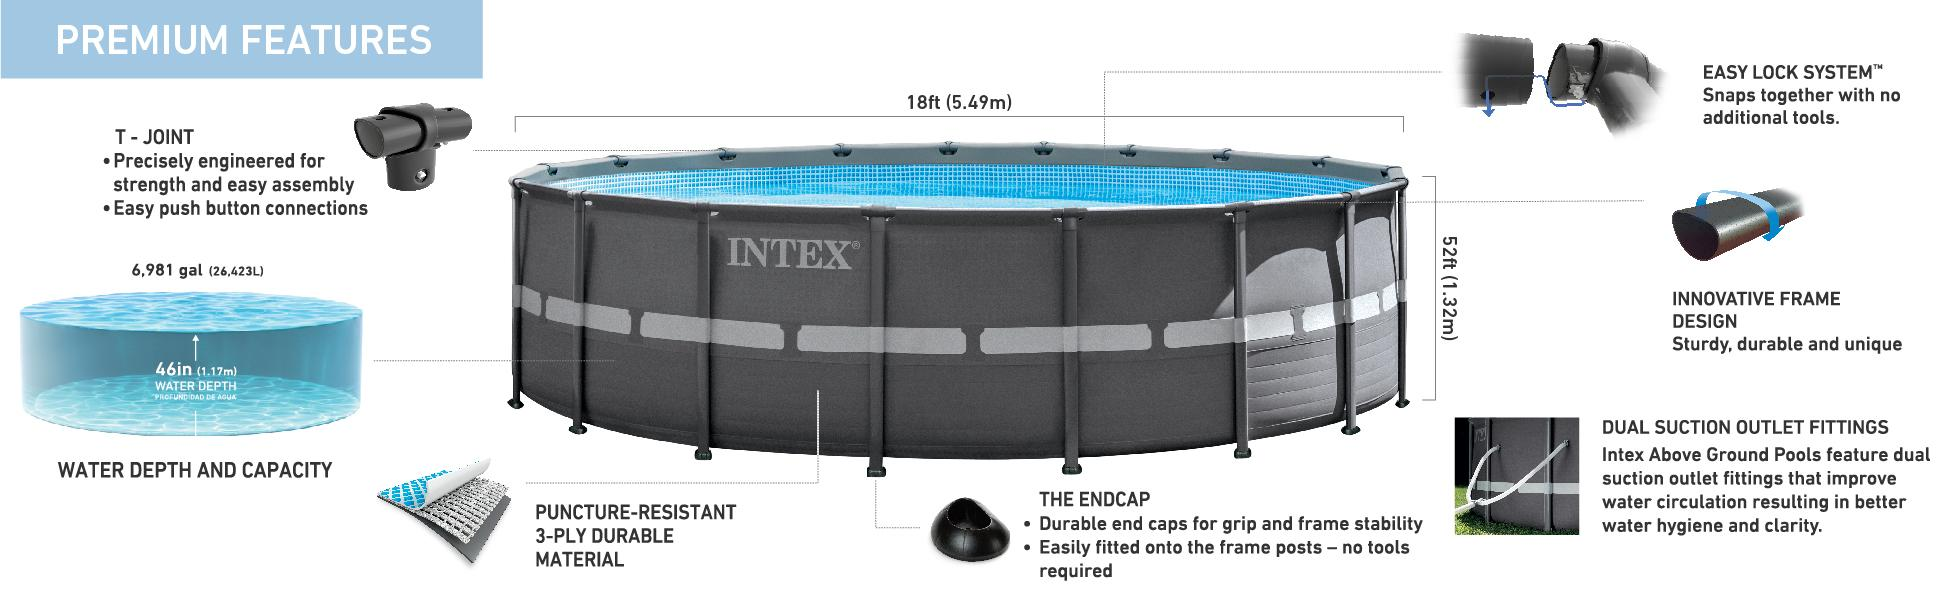 Amazoncom Intex 18Ft X 52In Ultra Frame Pool Set with Filter Pump